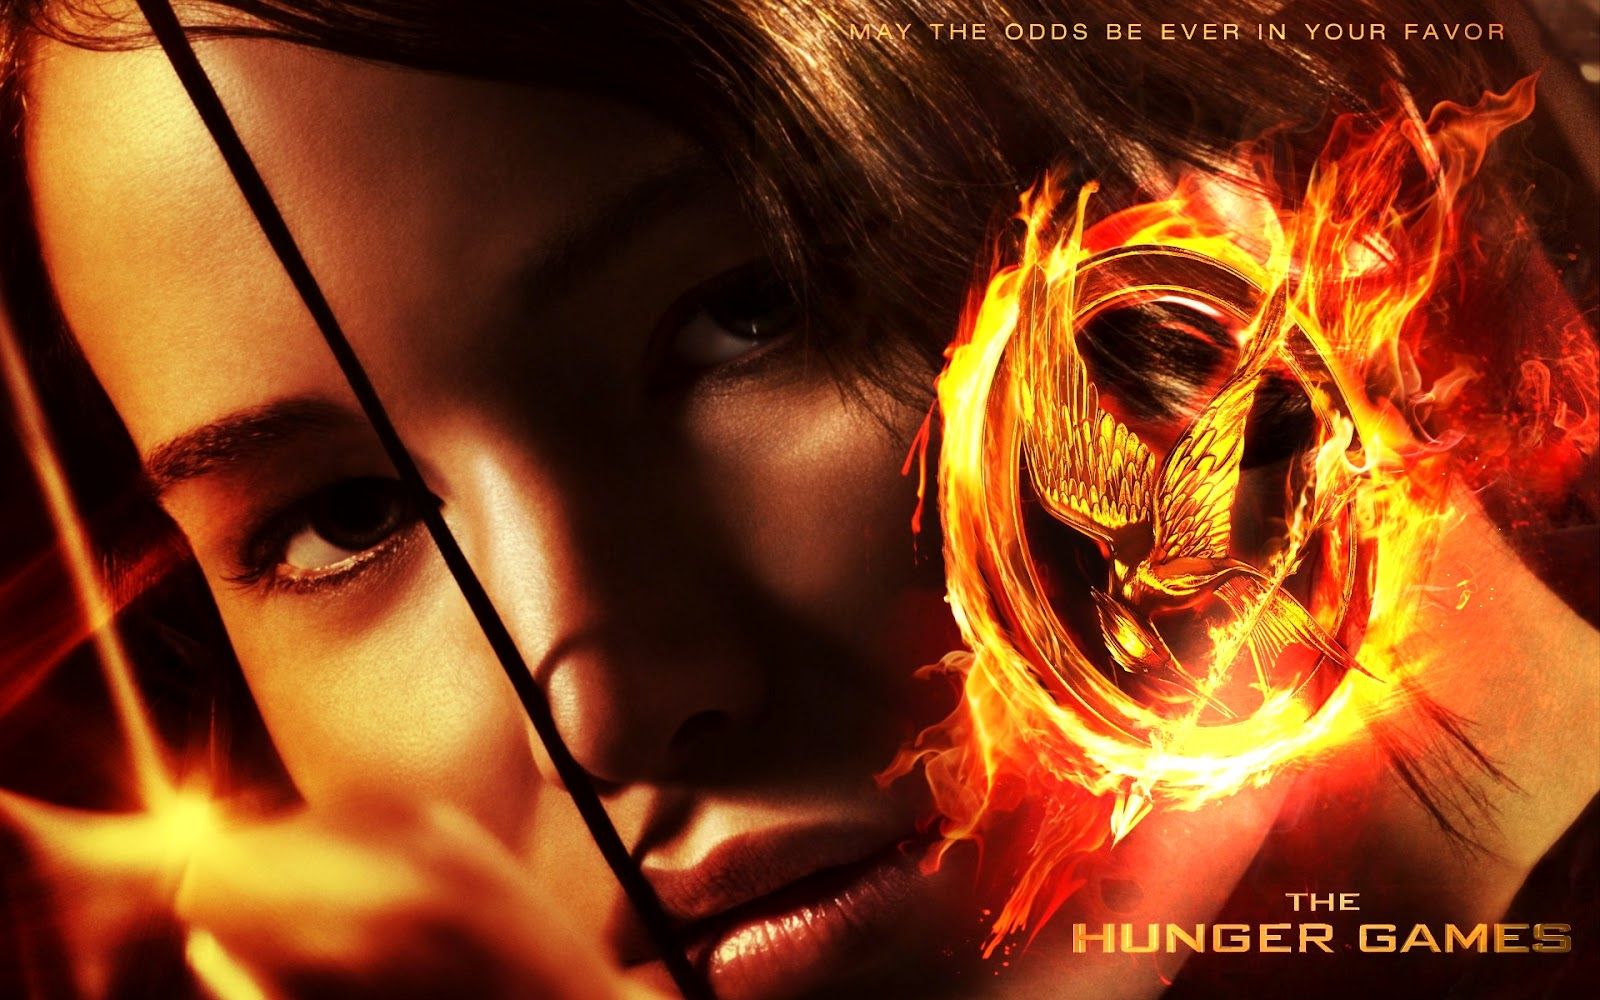 http://1.bp.blogspot.com/-rqMAUsbK31Q/T-My4lxP4JI/AAAAAAAAMpA/ZZN27APN16M/s1600/Hunger+Games+Movie+Wallpaper+1920x1200.jpg